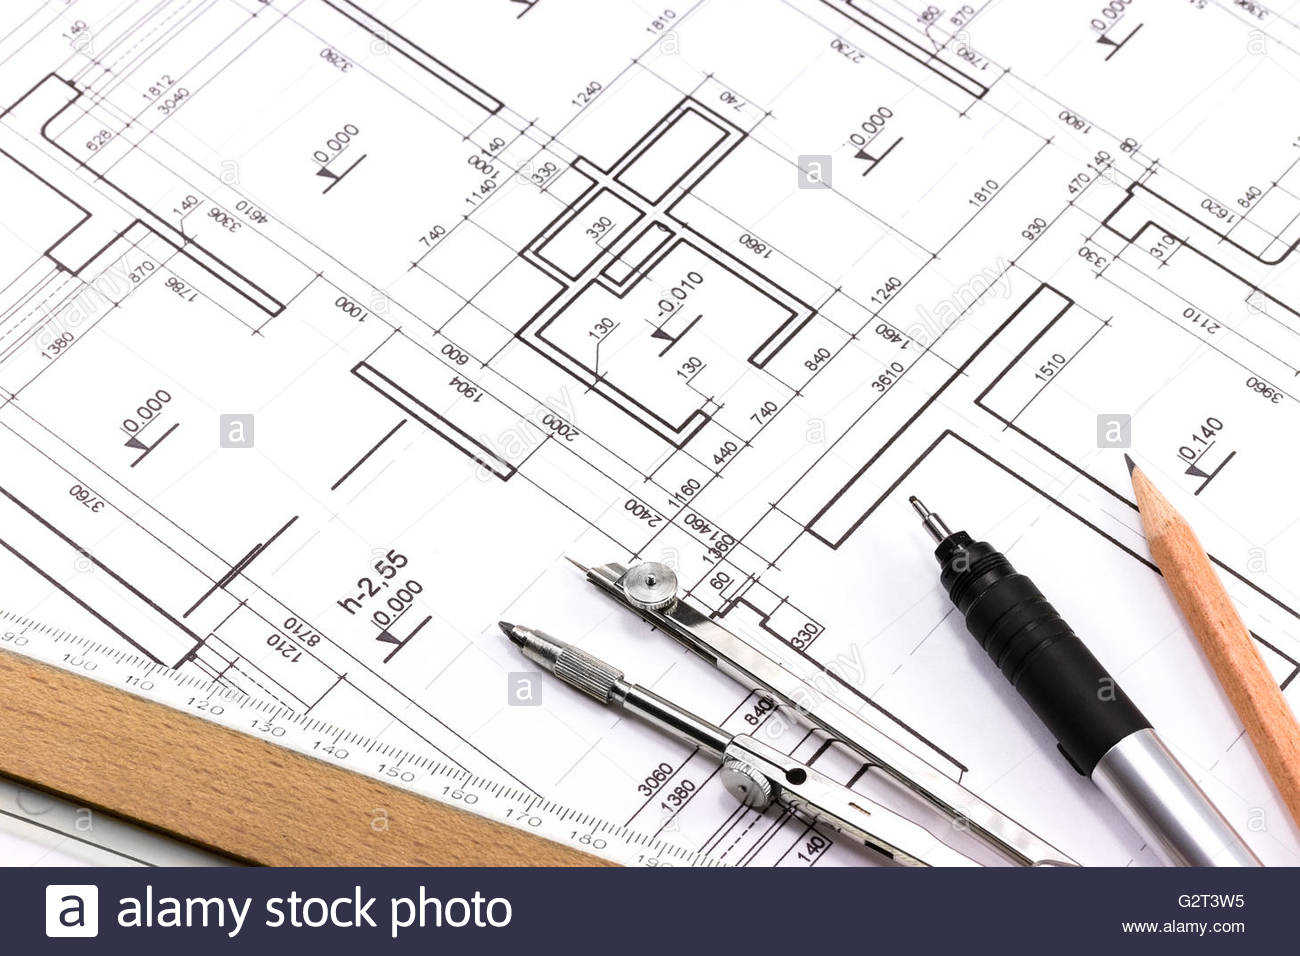 1300x956 Architectural Background With Technical Drawings And Work Tools